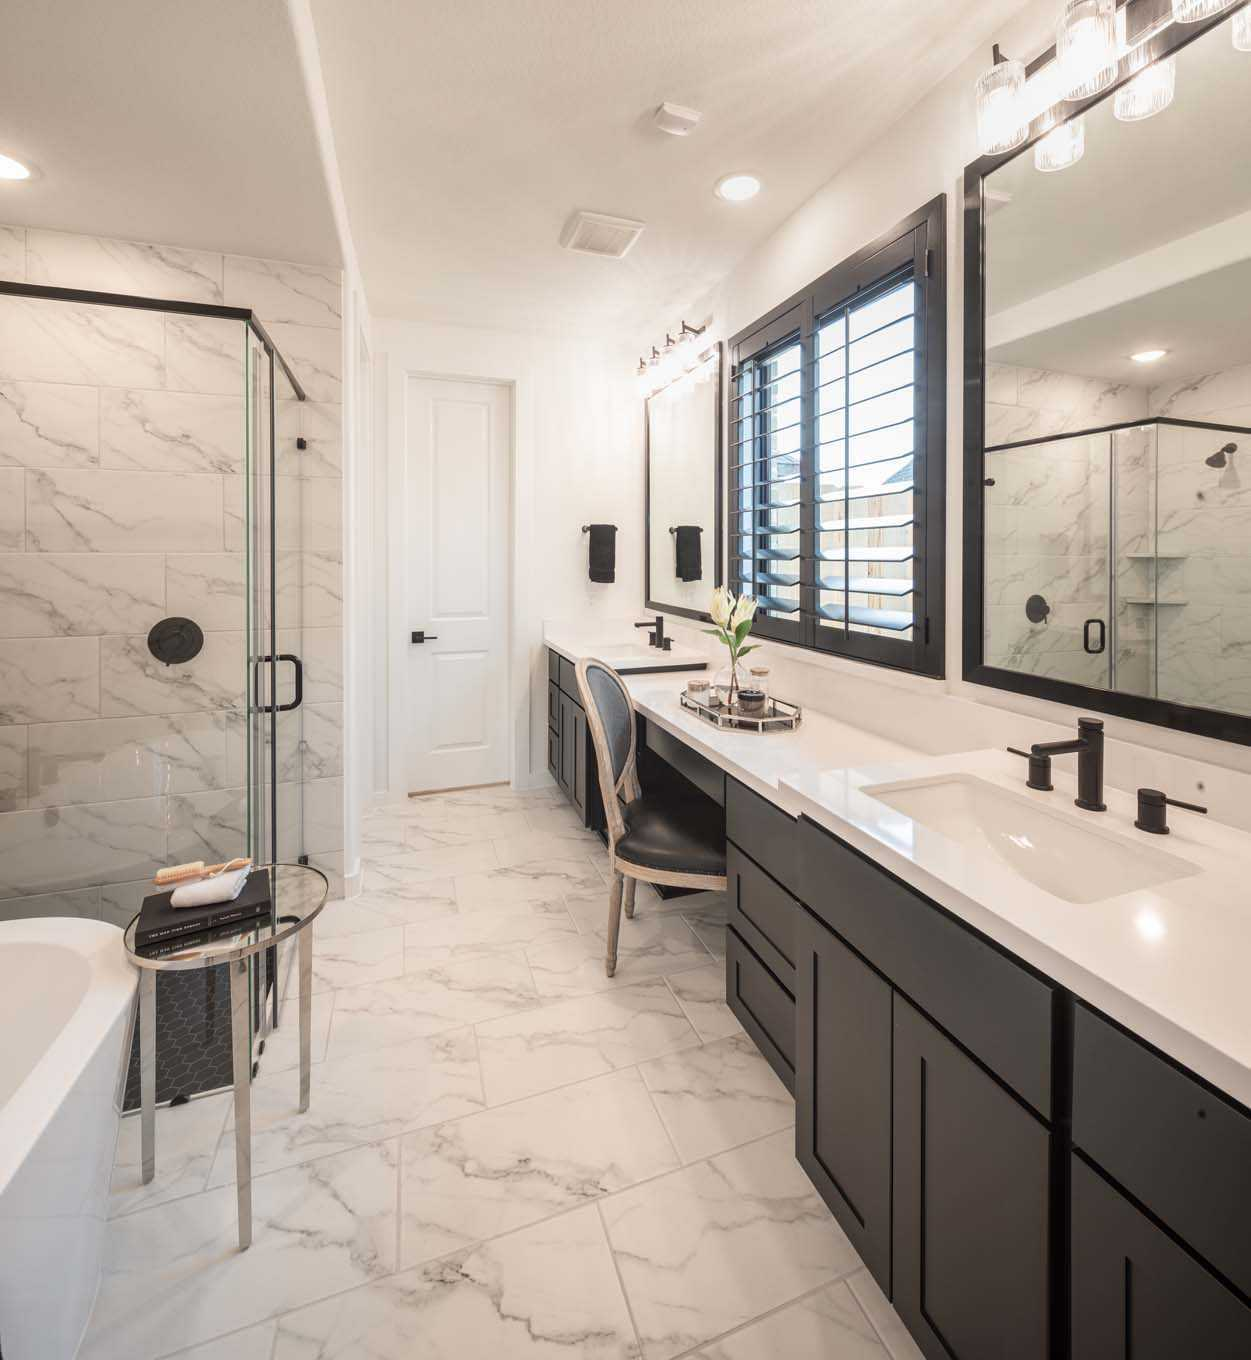 Bathroom featured in the Plan 559H By Highland Homes in San Antonio, TX